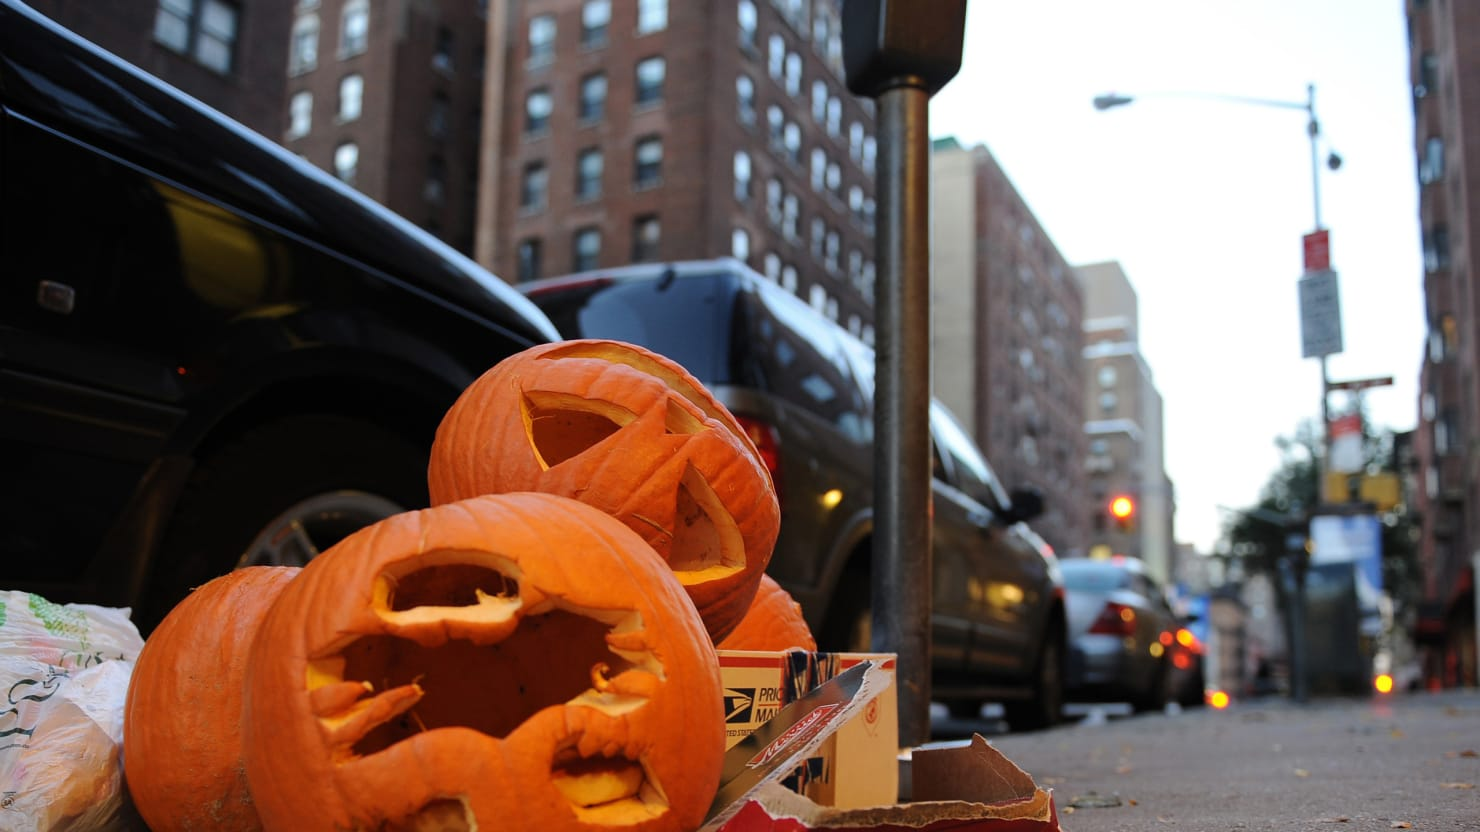 eat your halloween pumpkin and save the planet!